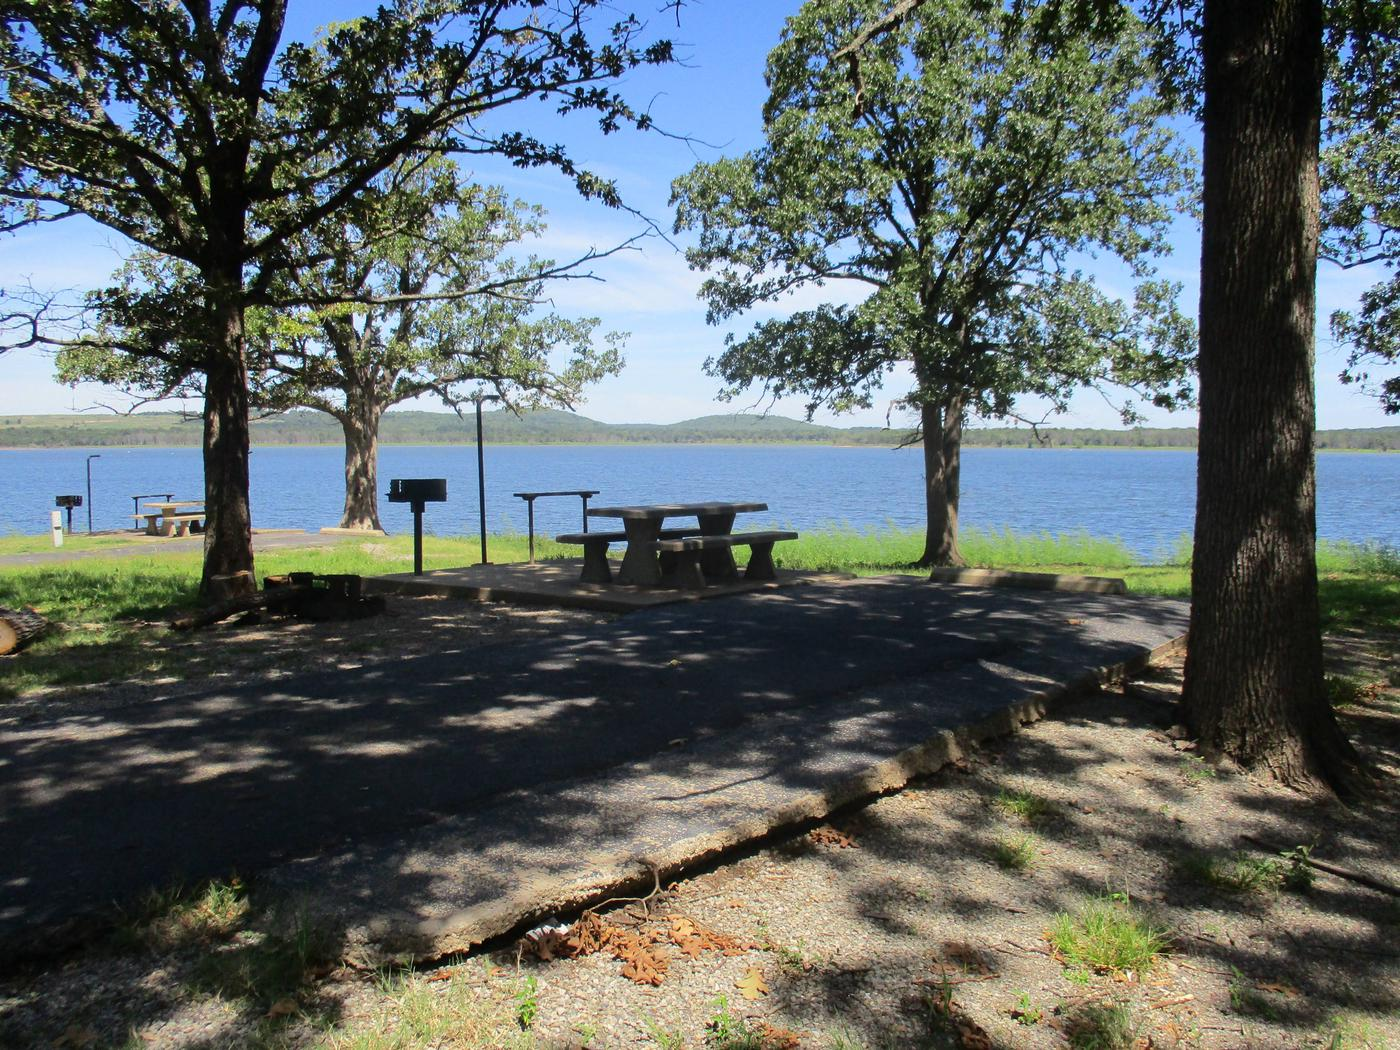 Wildwood - Site 23Site 23 offers a concrete picnic table, pedestal grill, utility table, lantern holder and fire ring.